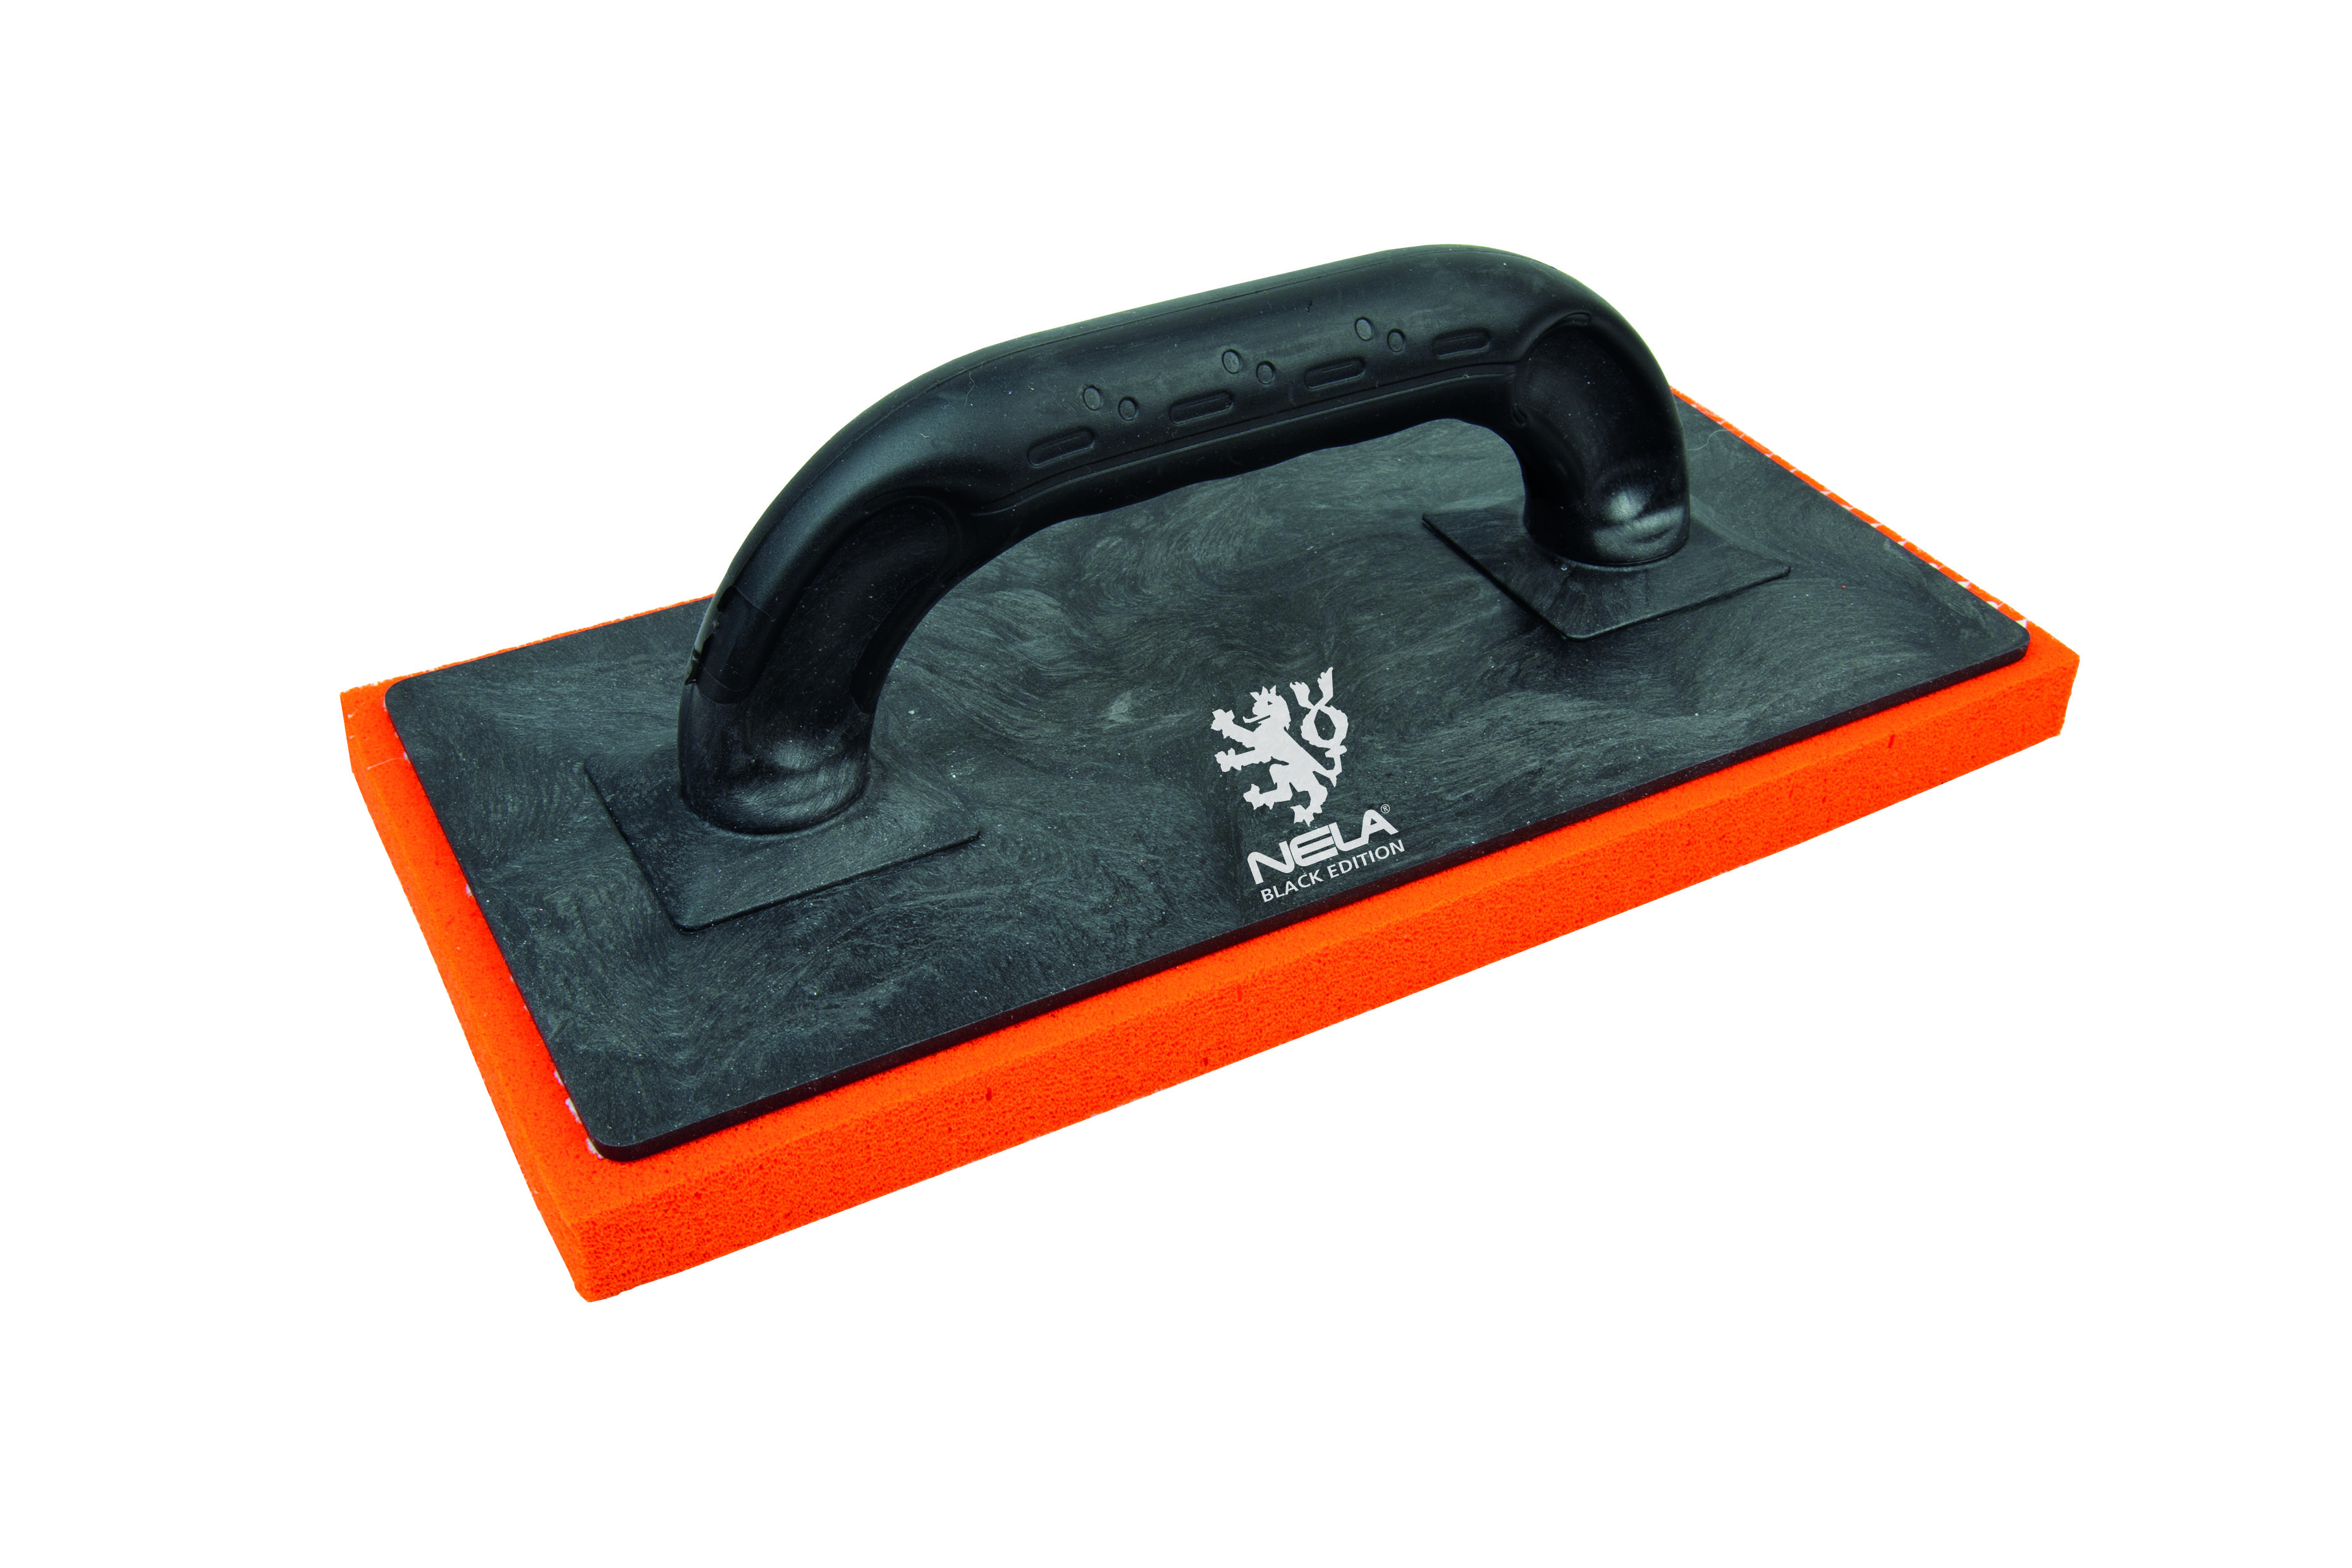 Black Edition Sponge Float with red rubber - Fine